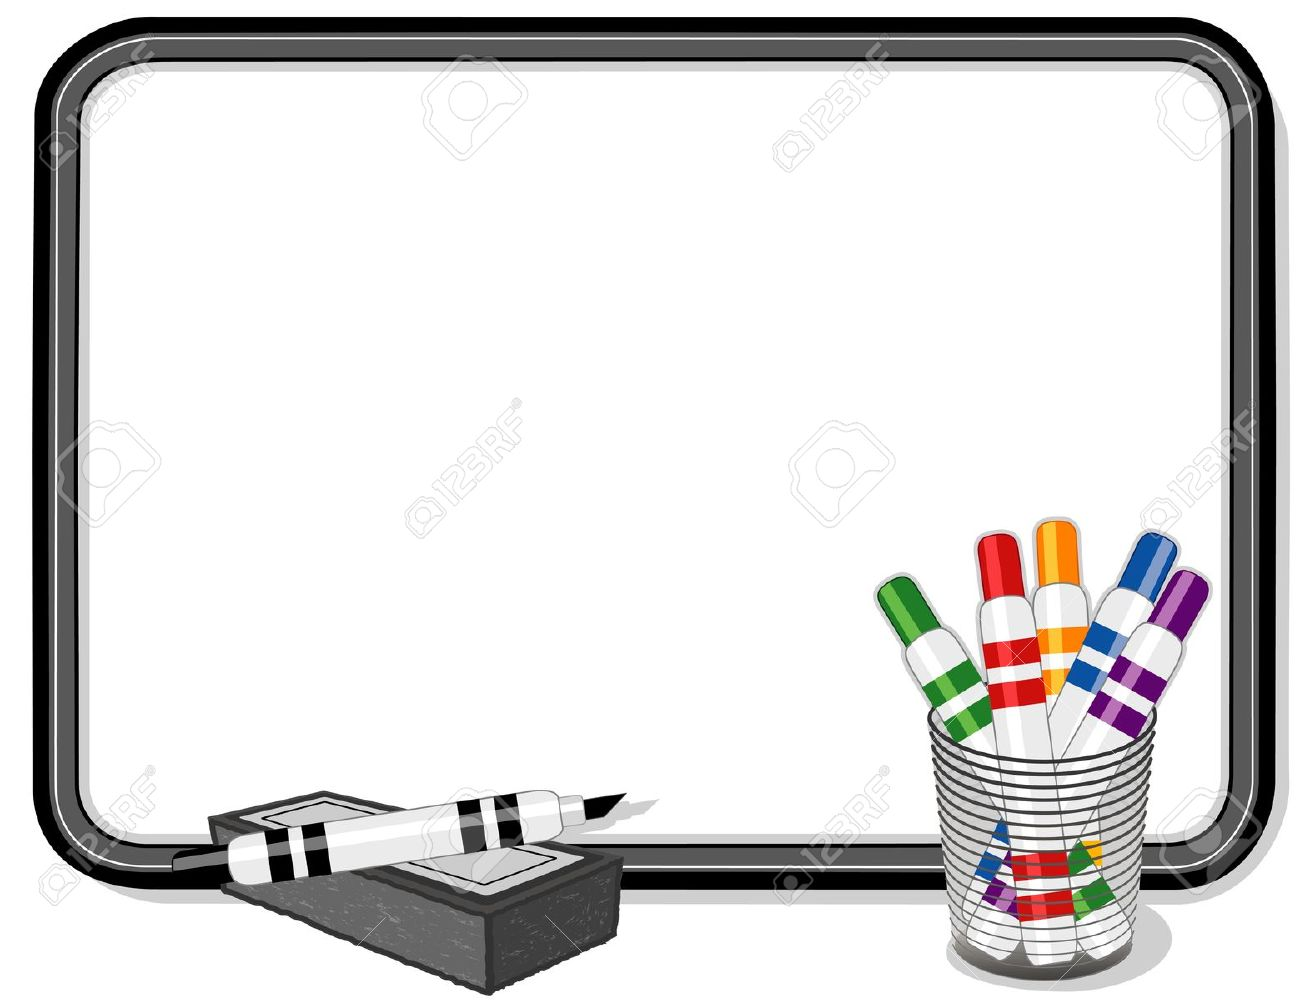 Whiteboard Cliparts